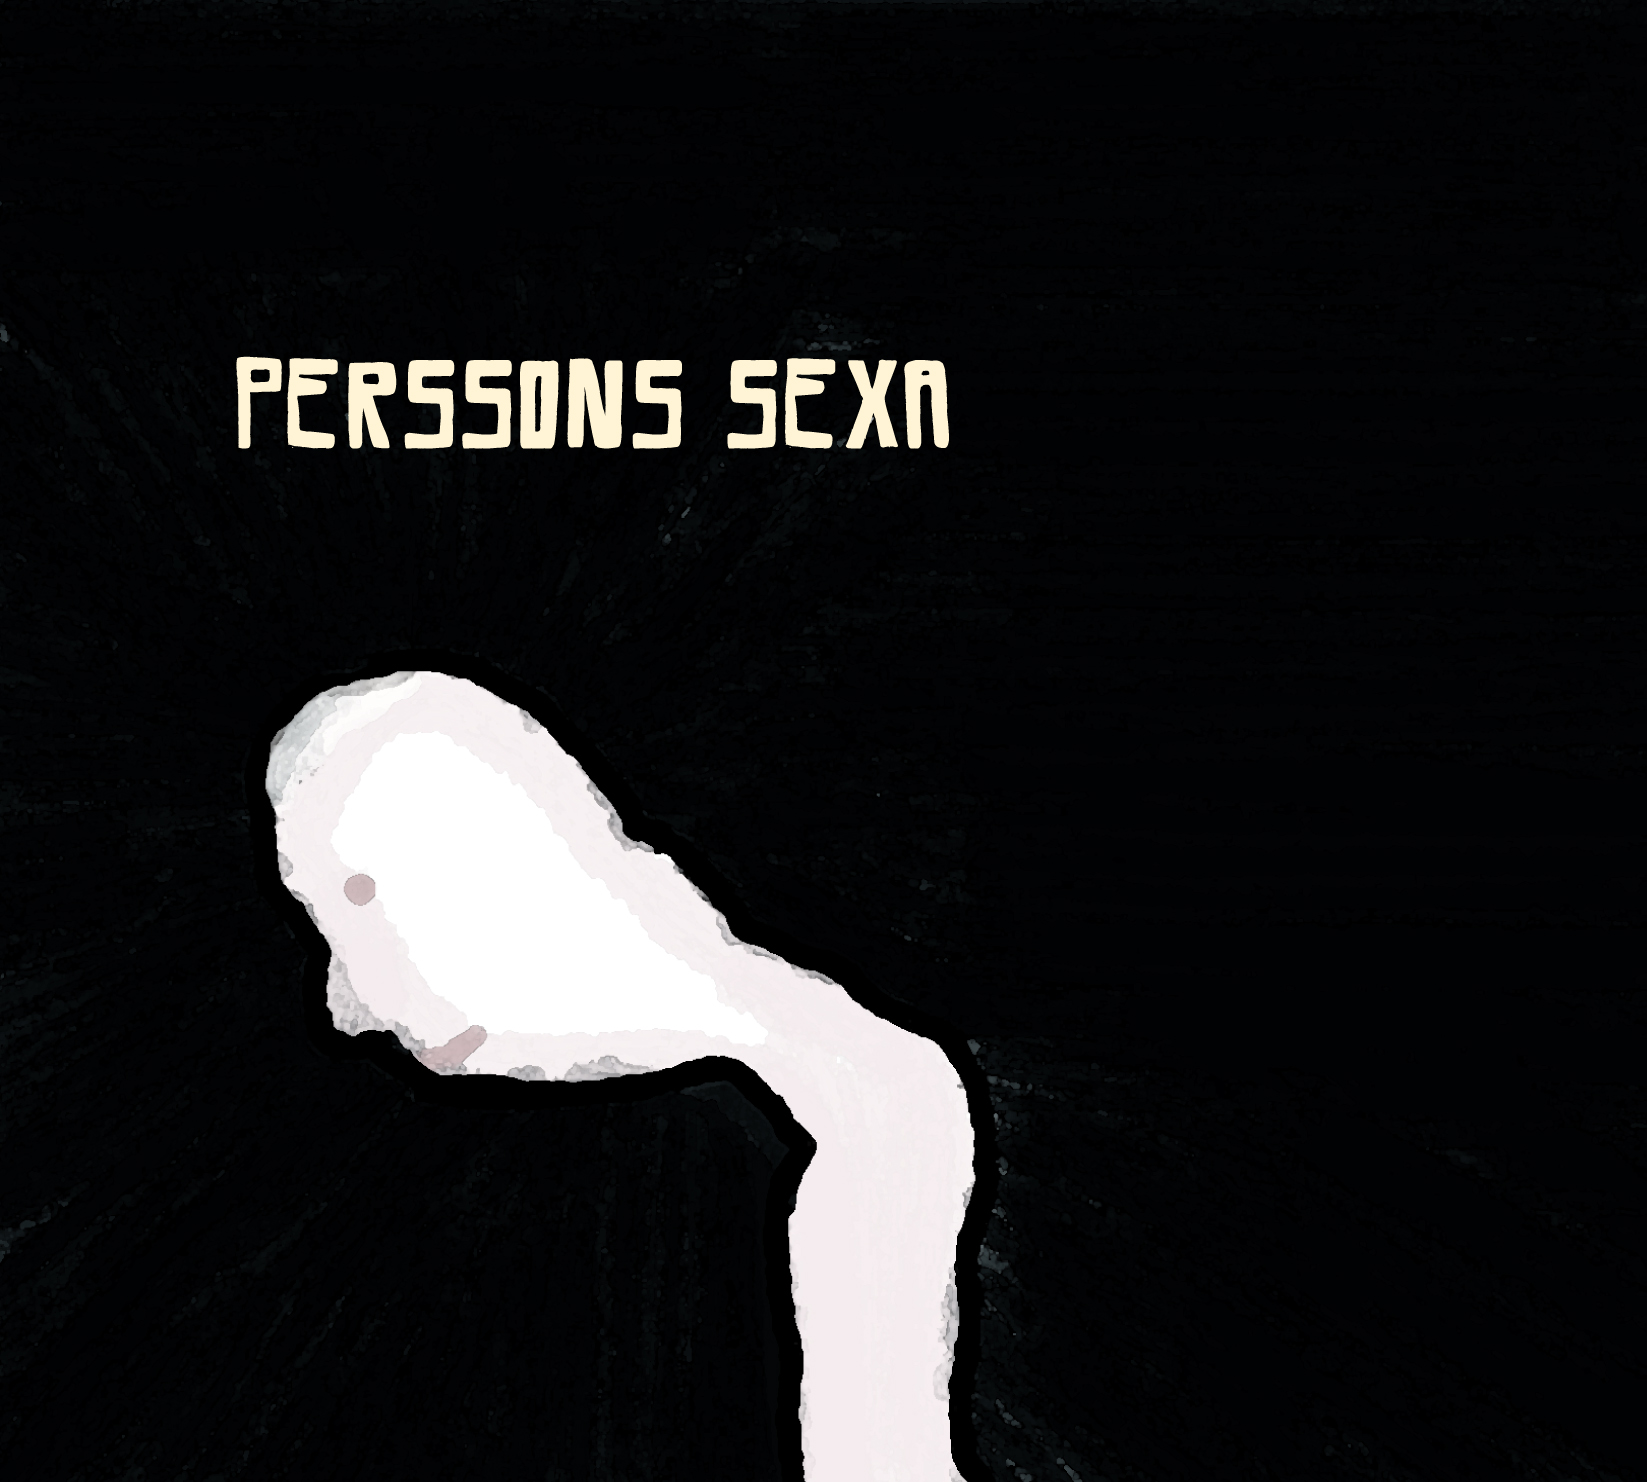 Perssons Sexa